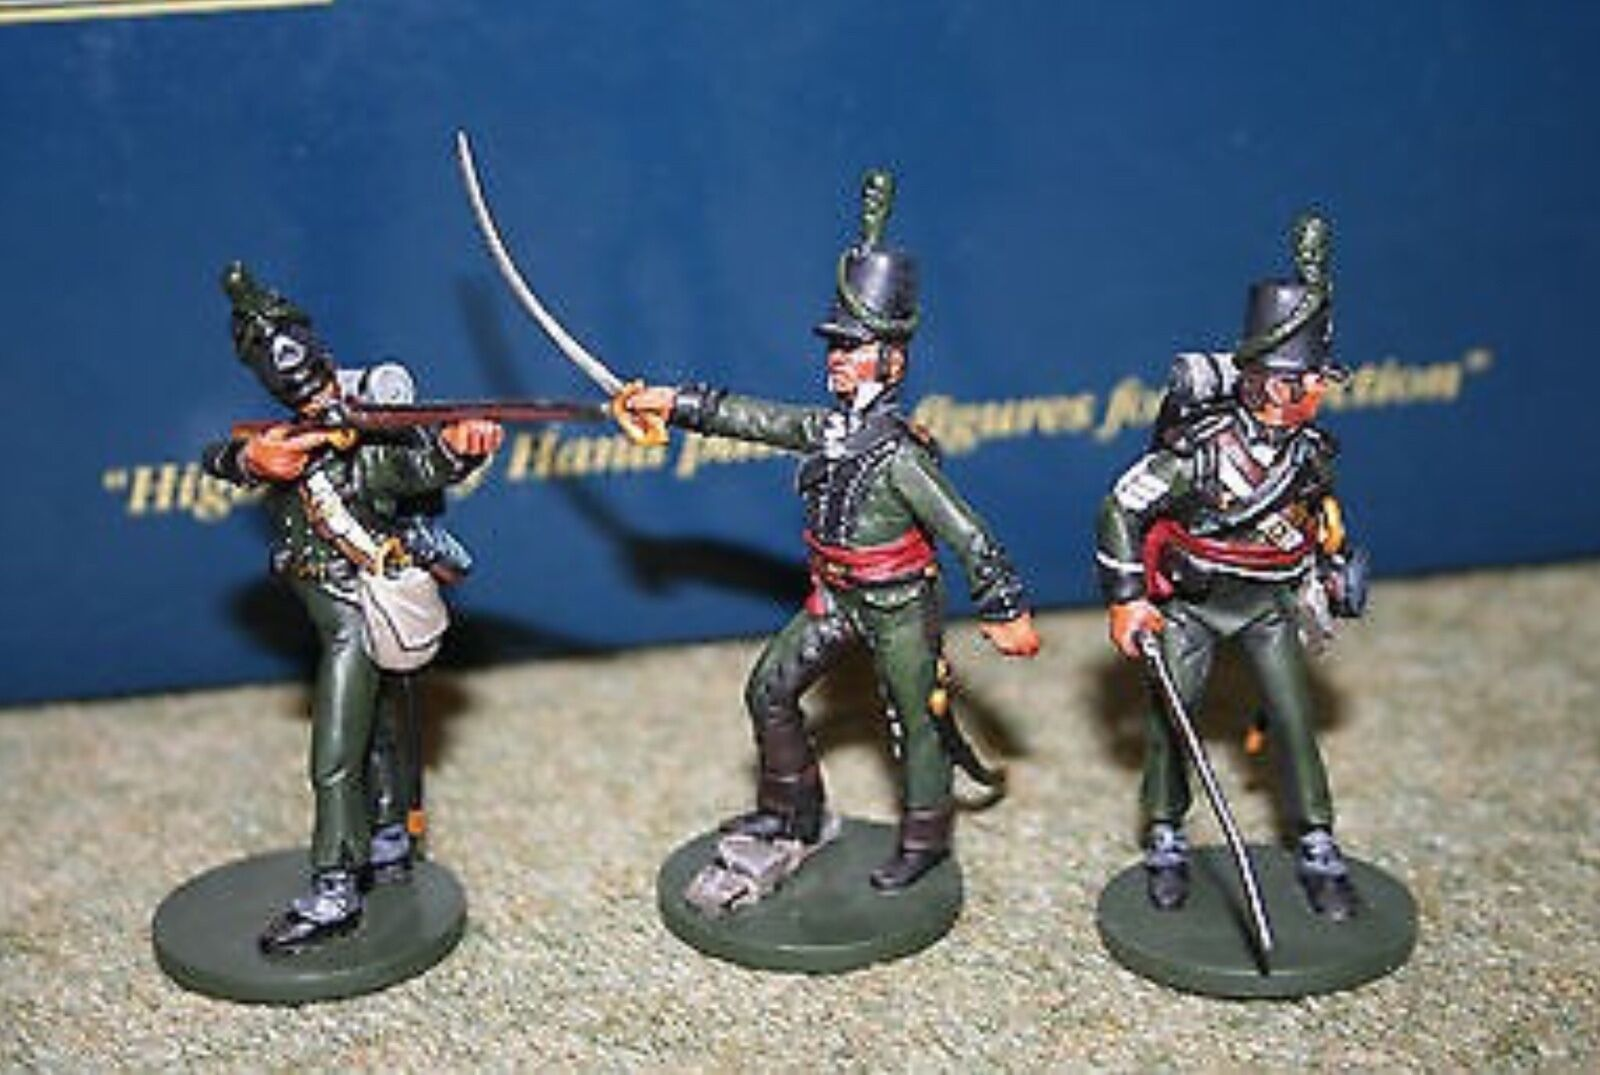 Oryon ART 6023 British Light Infantry  95th Regt. Rifles  1811